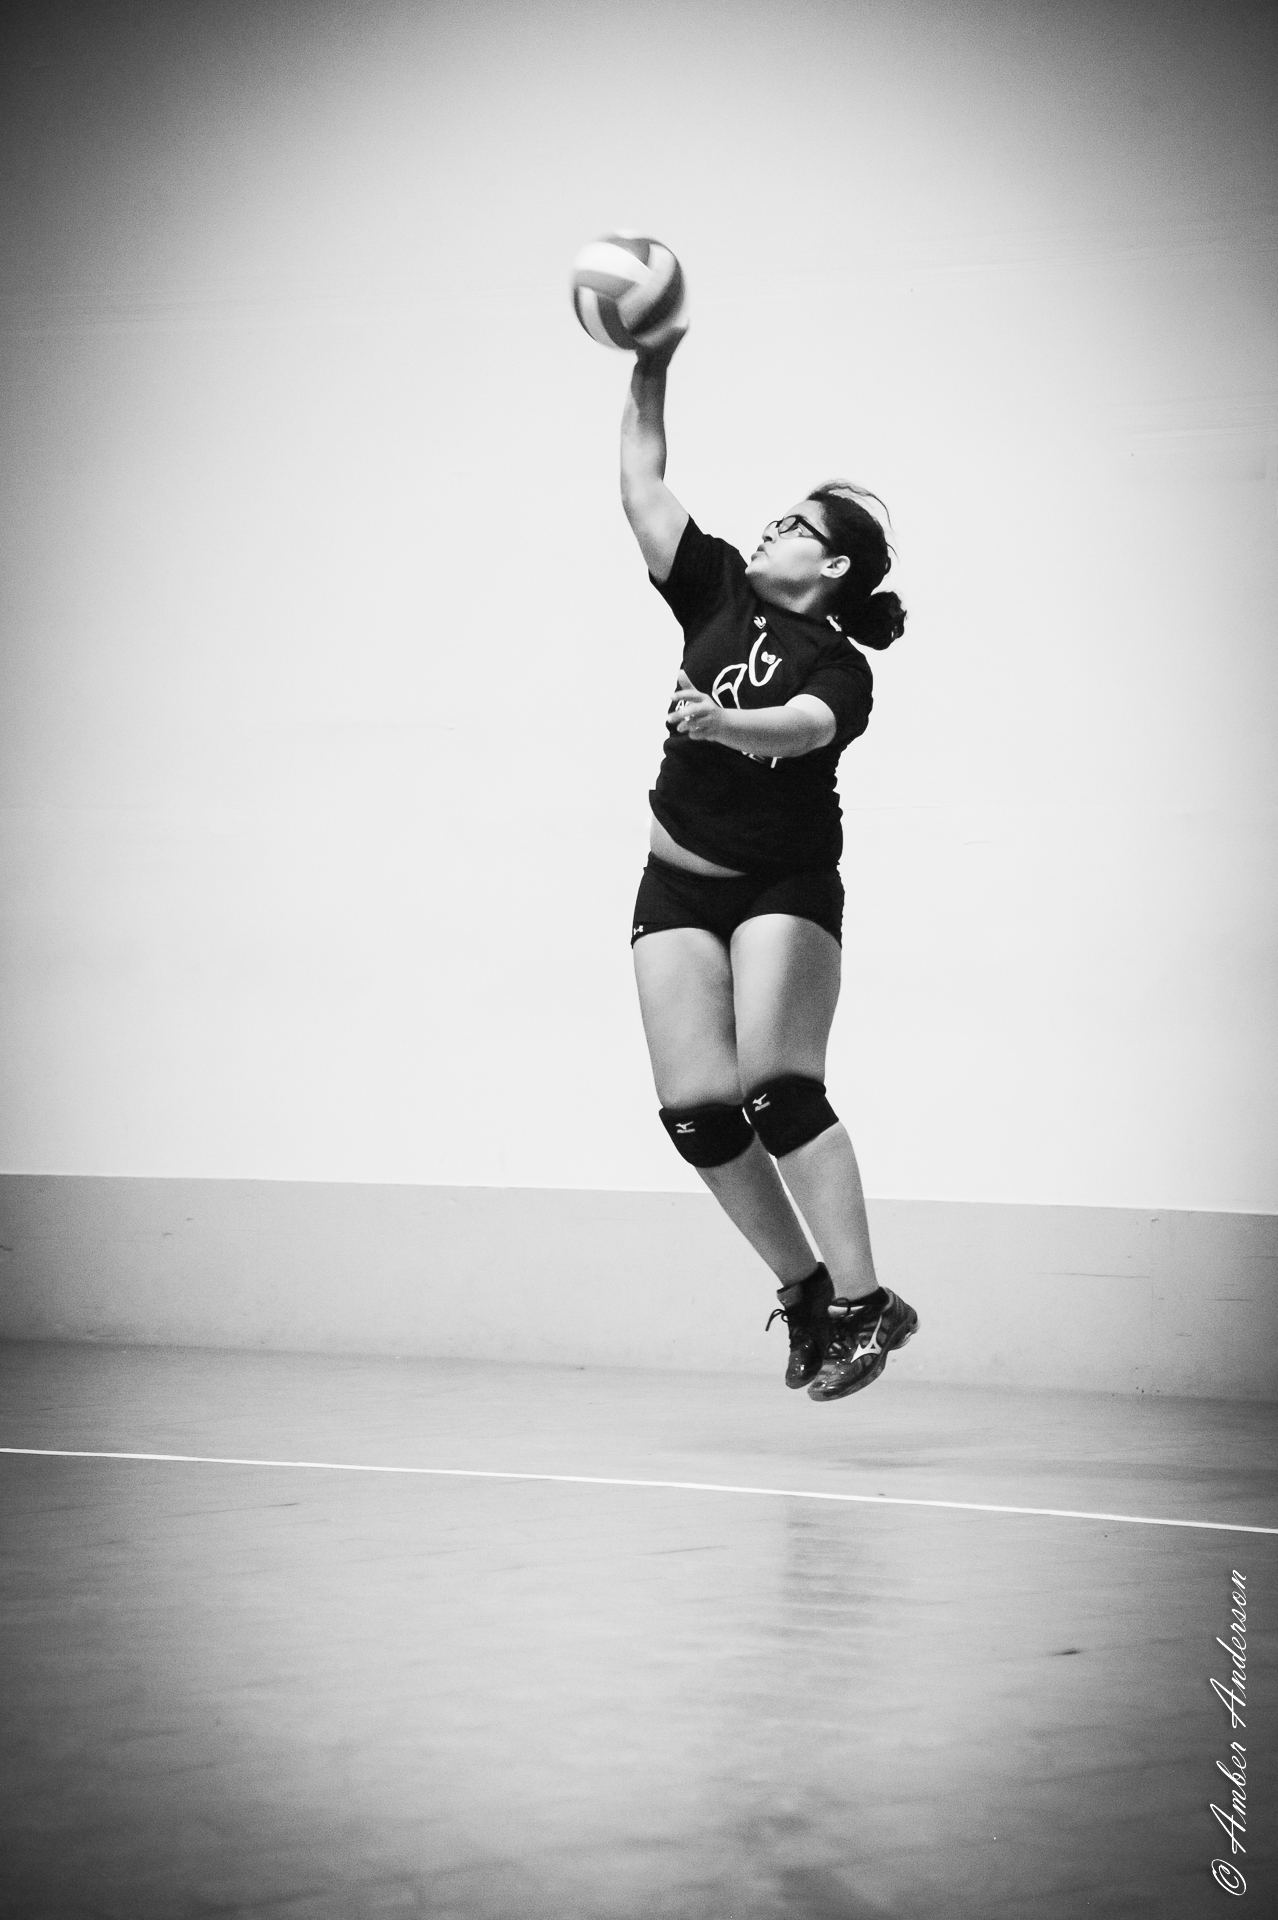 Jump Server Daja Jackson style.  She's got skillz!  Taken at Aspire Volleyball Club in Phoenix, AZ.